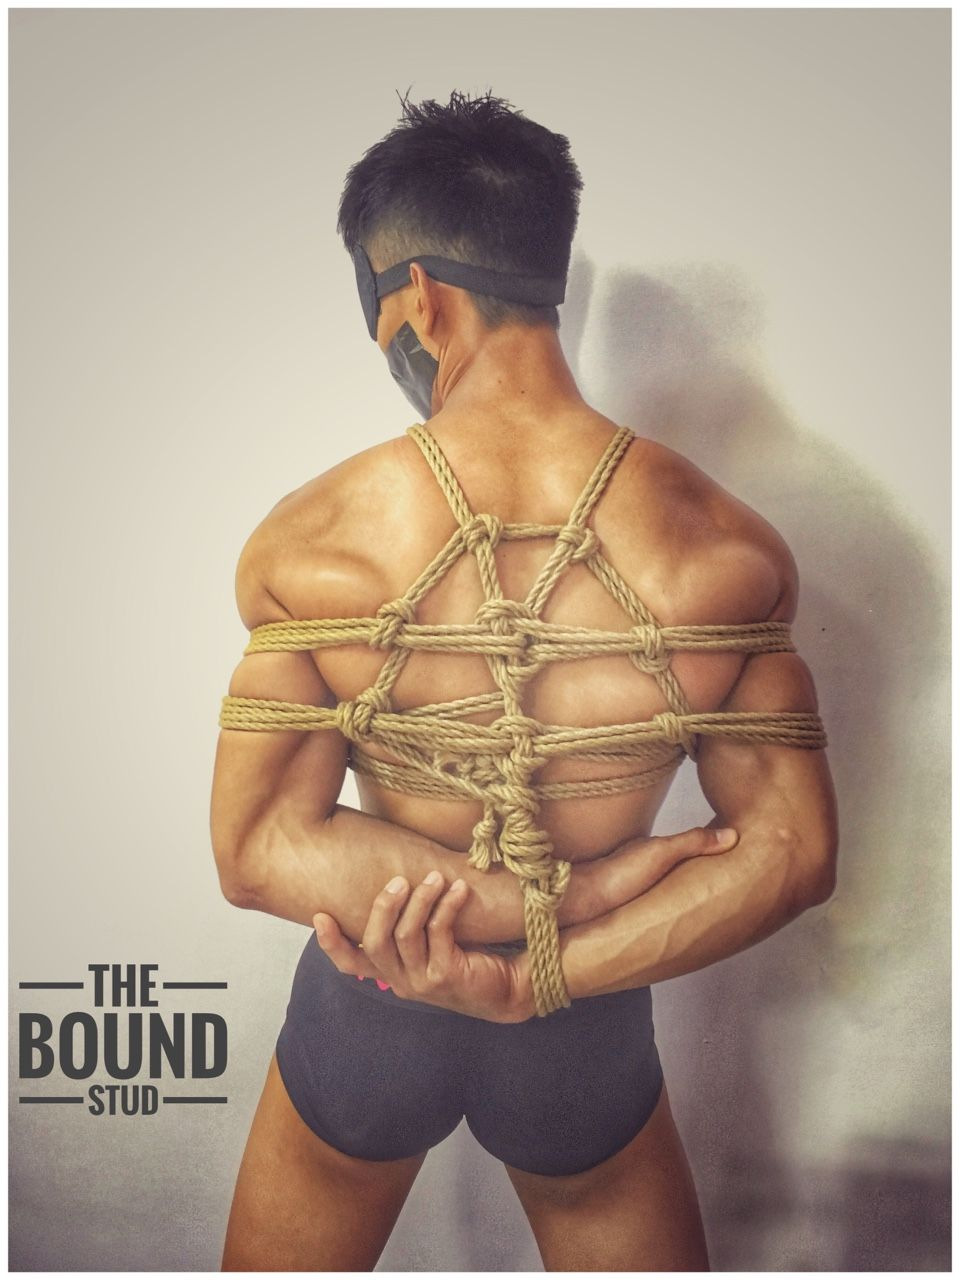 Erotic bound men